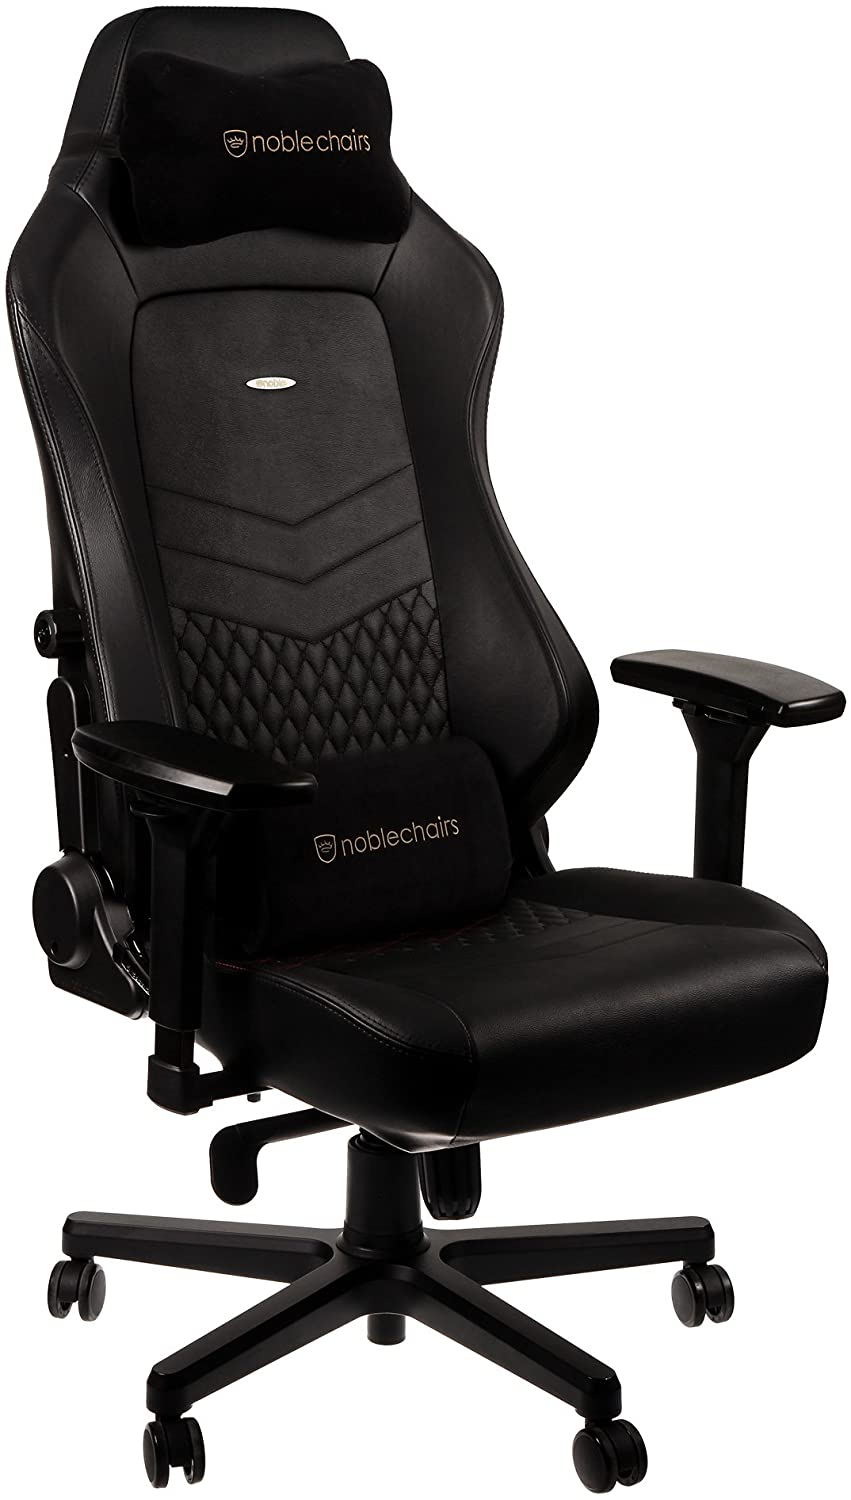 noblechairs HERO Pure Leather Gaming Chair - cold foam, steel armrests,  60mm casters, 150kg - black - CASEKING 2.35.63.01.005